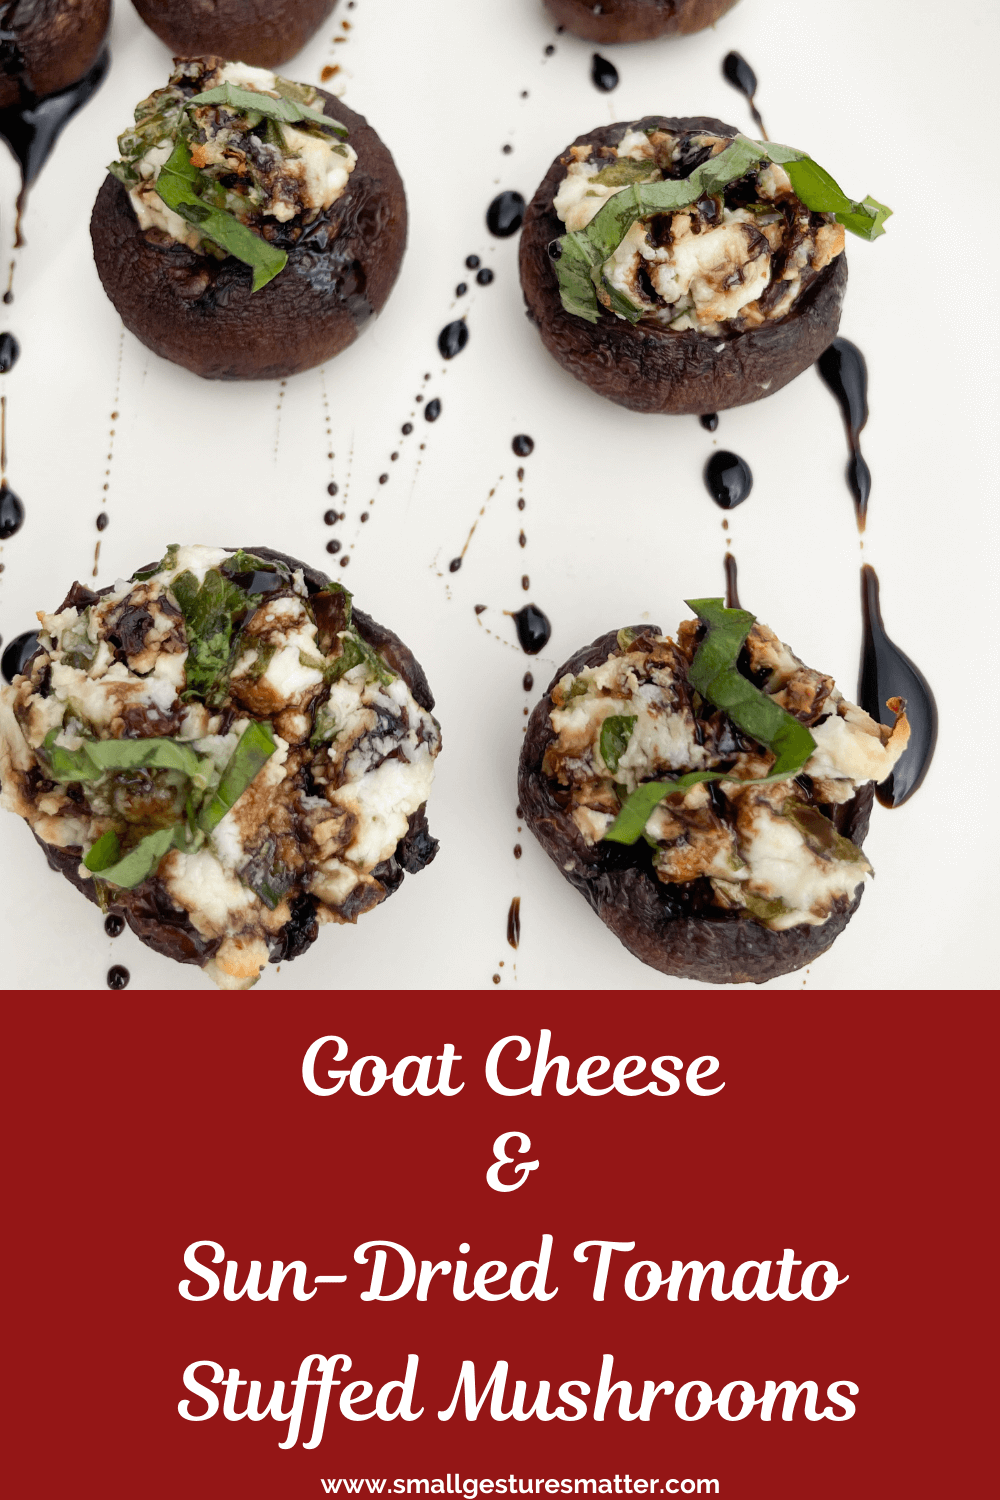 Goat Cheese and Sun-Dried Tomato Stuffed Mushrooms